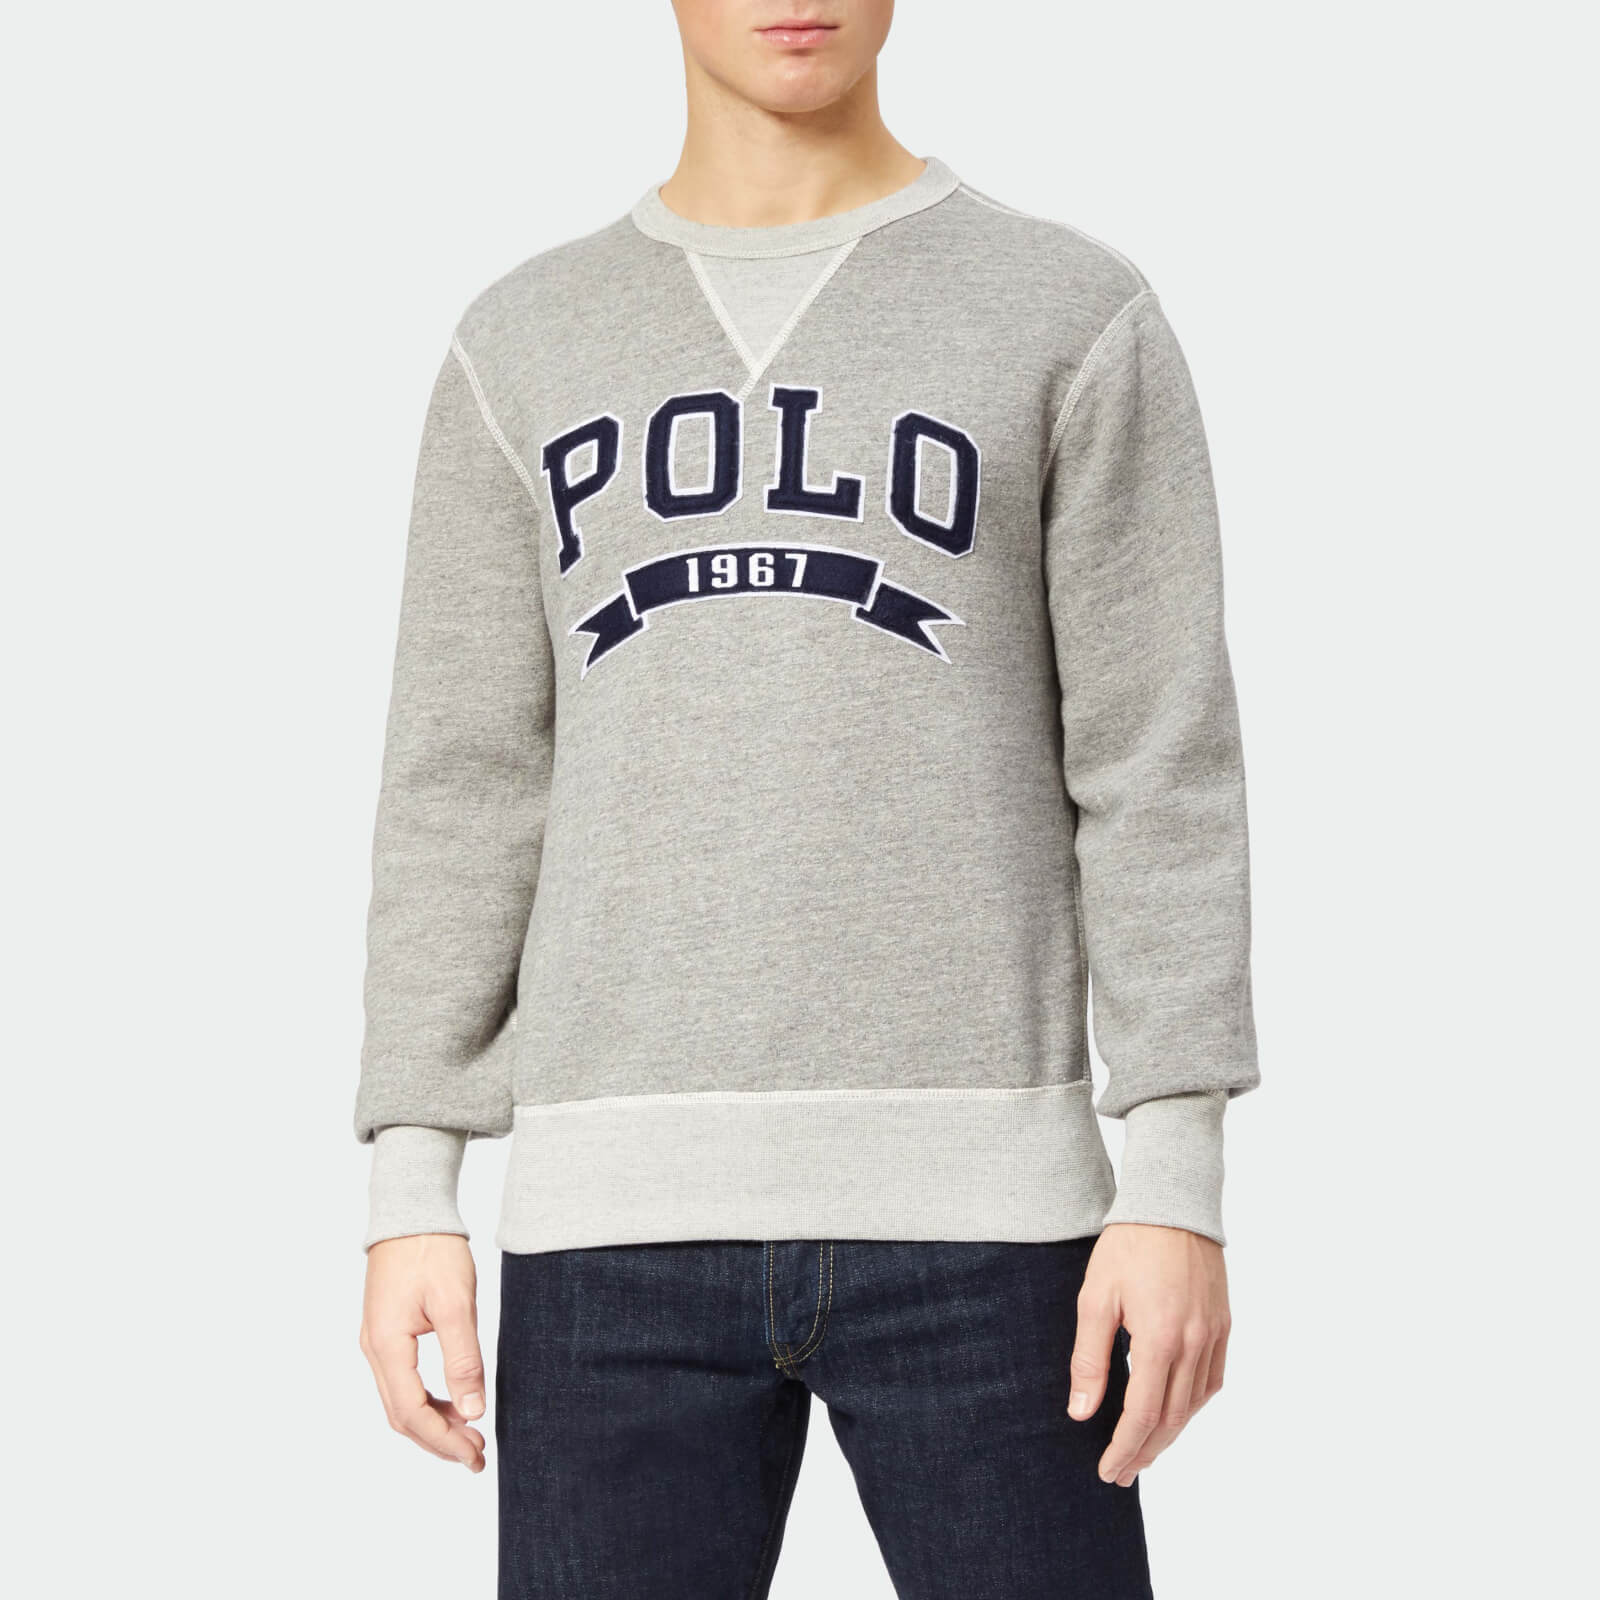 09fb9ff33c Polo Ralph Lauren Men s Large Polo Crew Neck Sweatshirt - Battalion Heather  - Free UK Delivery over £50